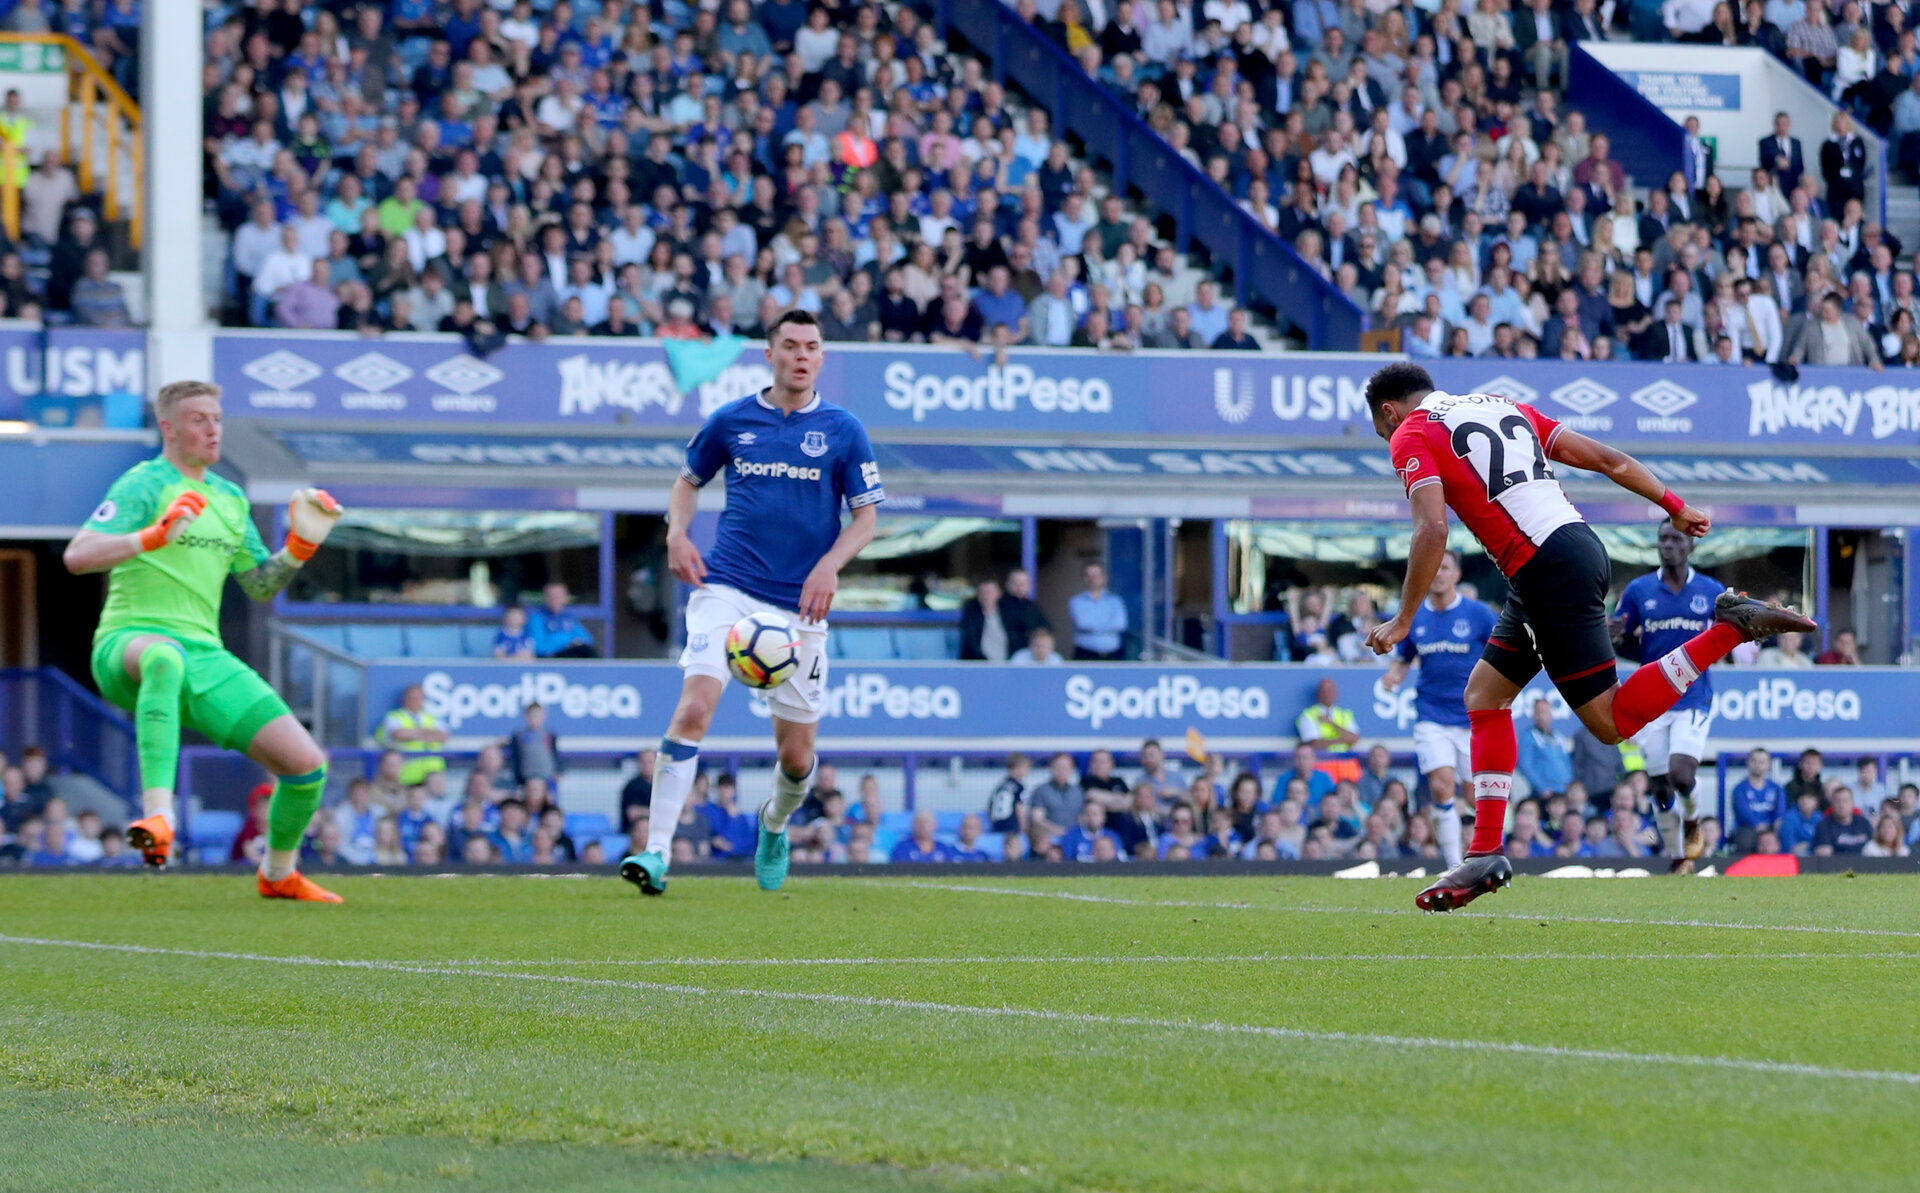 LIVERPOOL, ENGLAND - MAY 05: Nathan Redmond of Southampton heads his team into the lead during the Premier League match between Everton and Southampton at Goodison Park on May 5, 2018 in Liverpool, England. (Photo by Matt Watson/Southampton FC via Getty Images)